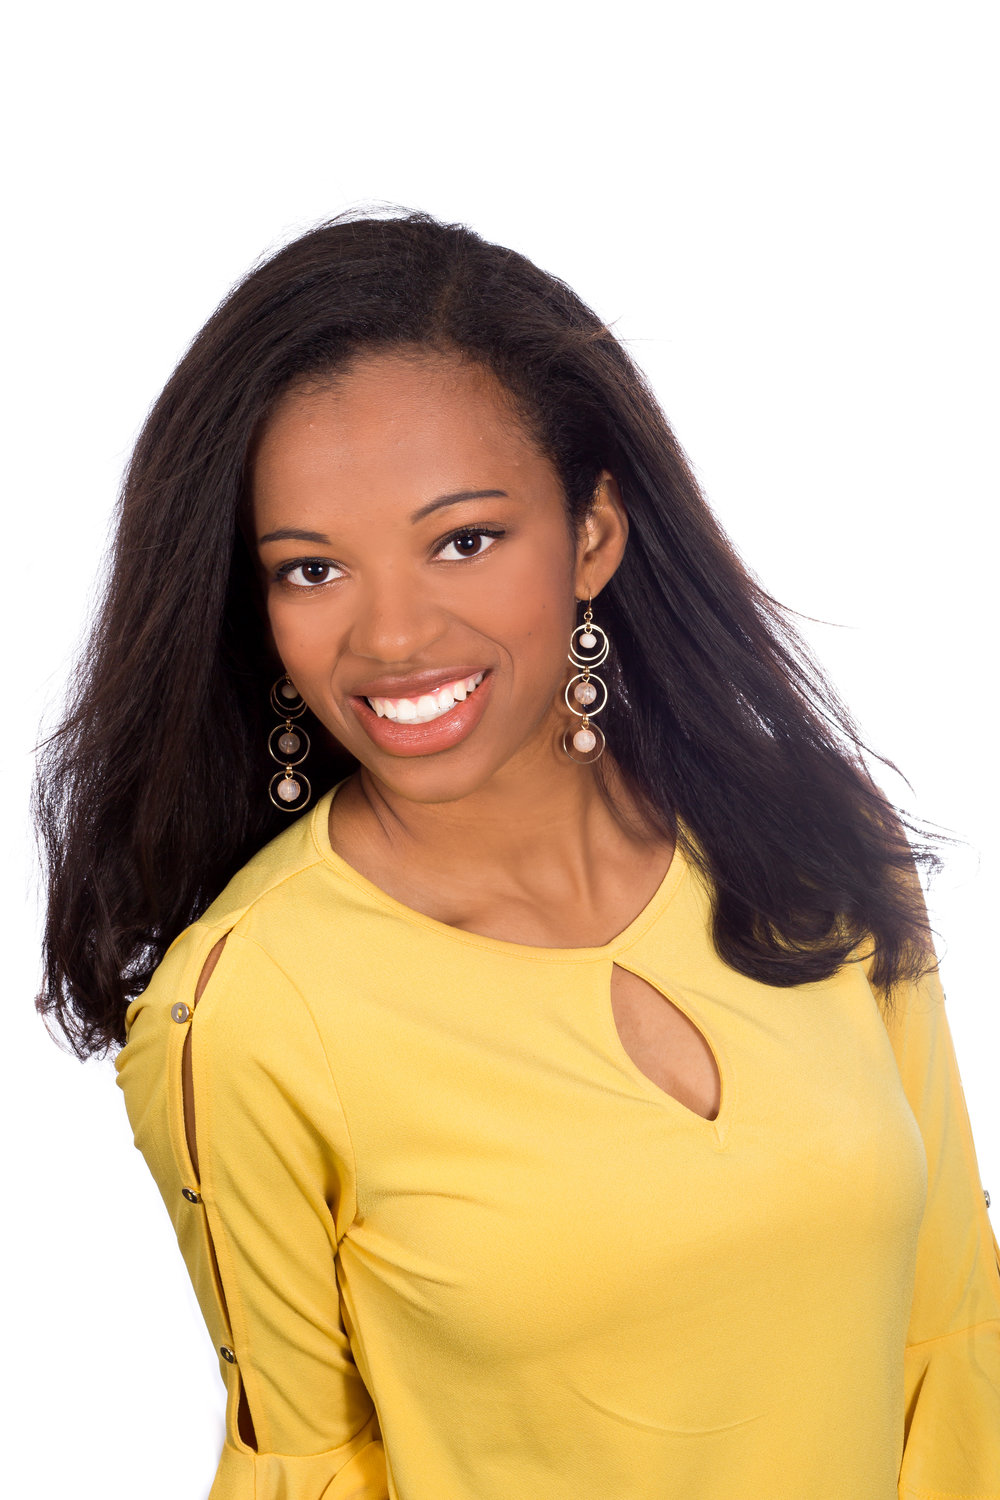 Angela Matthews Miss Merced County